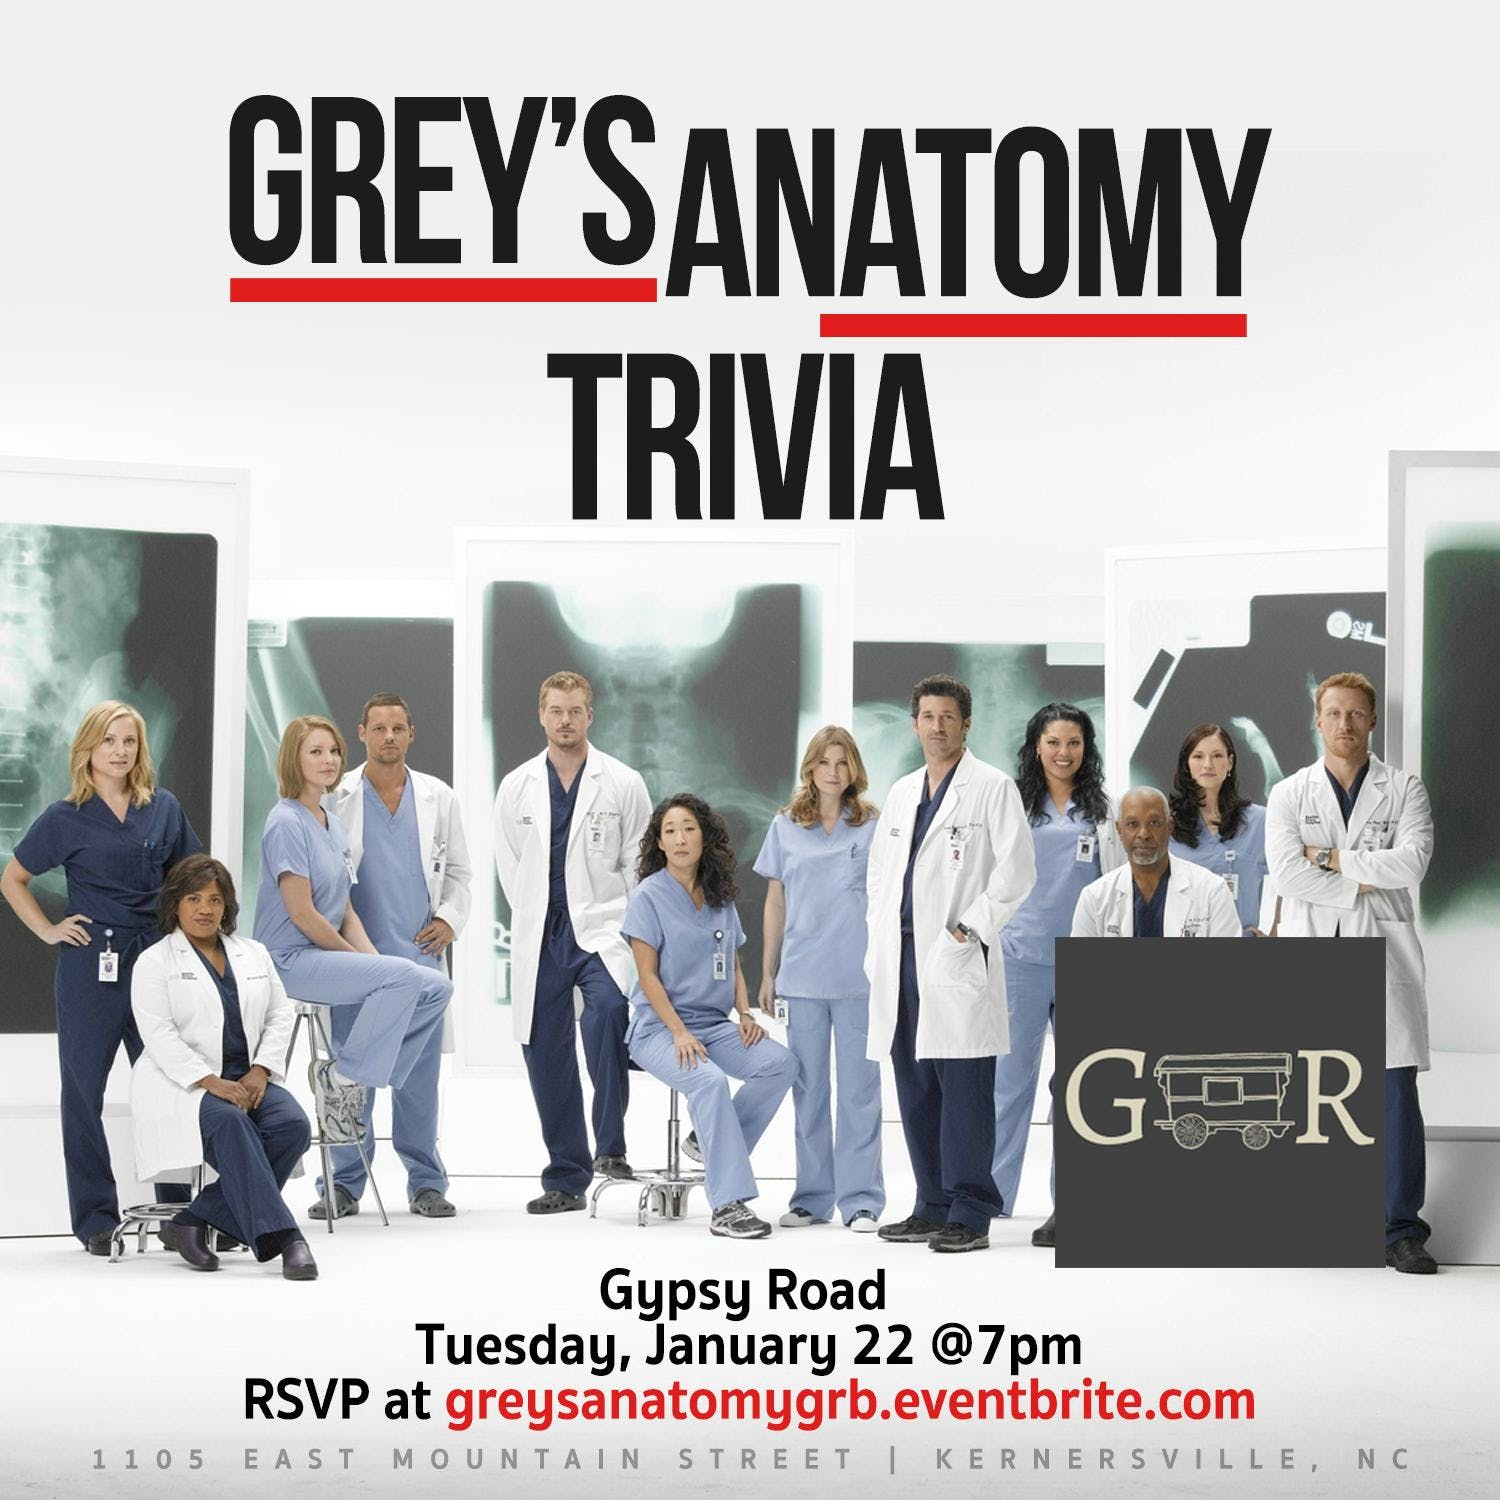 Greys Anatomy Trivia at Gypsy Road Brewing Company | Kernersville